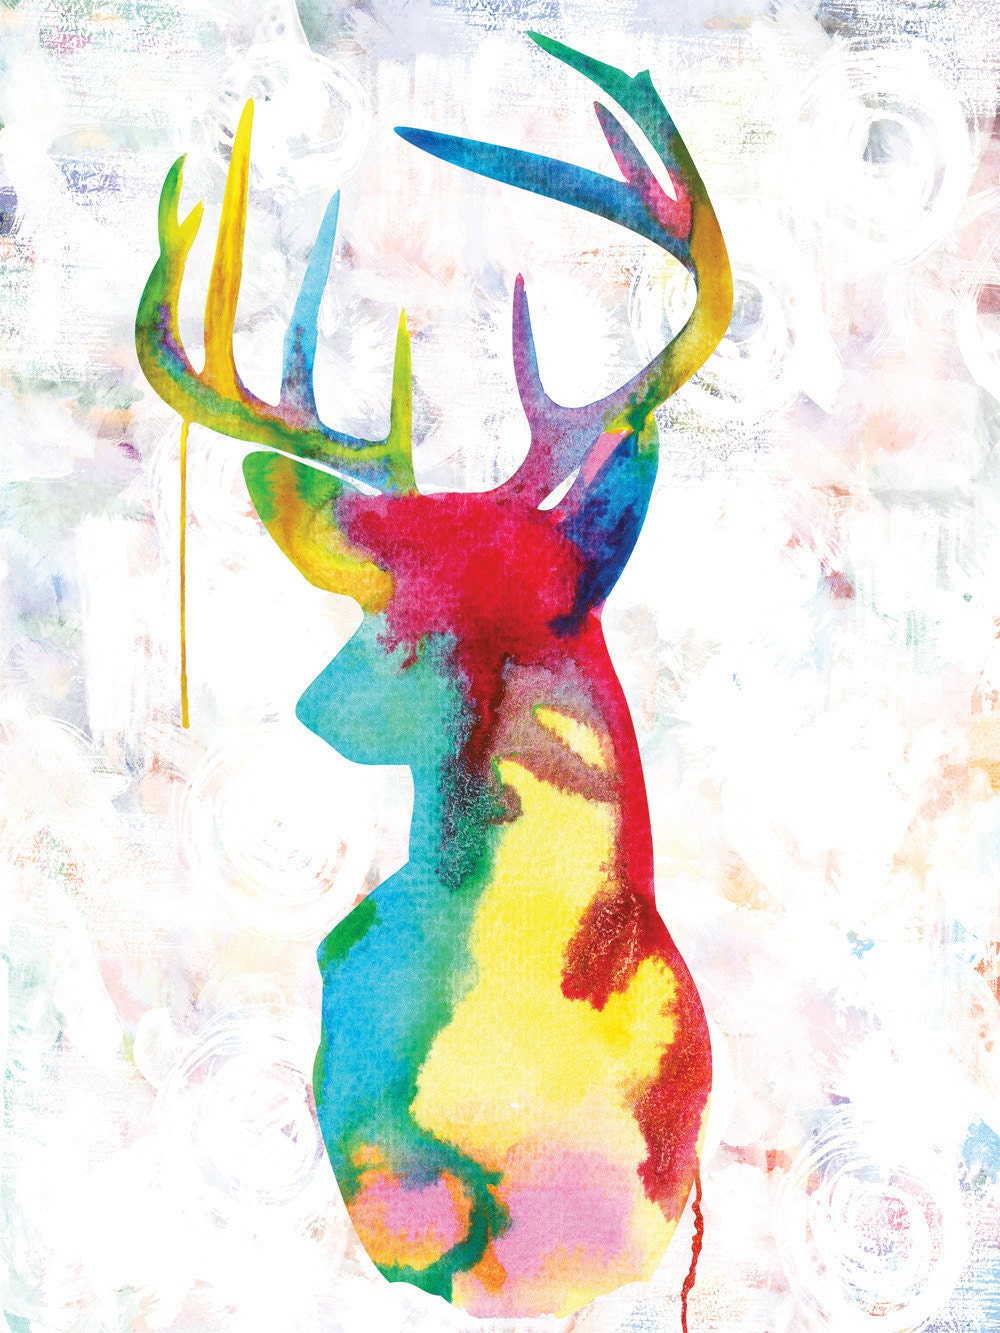 Oh Deer - Giclee print on canvas - huge 16x20 inches - ready to hang